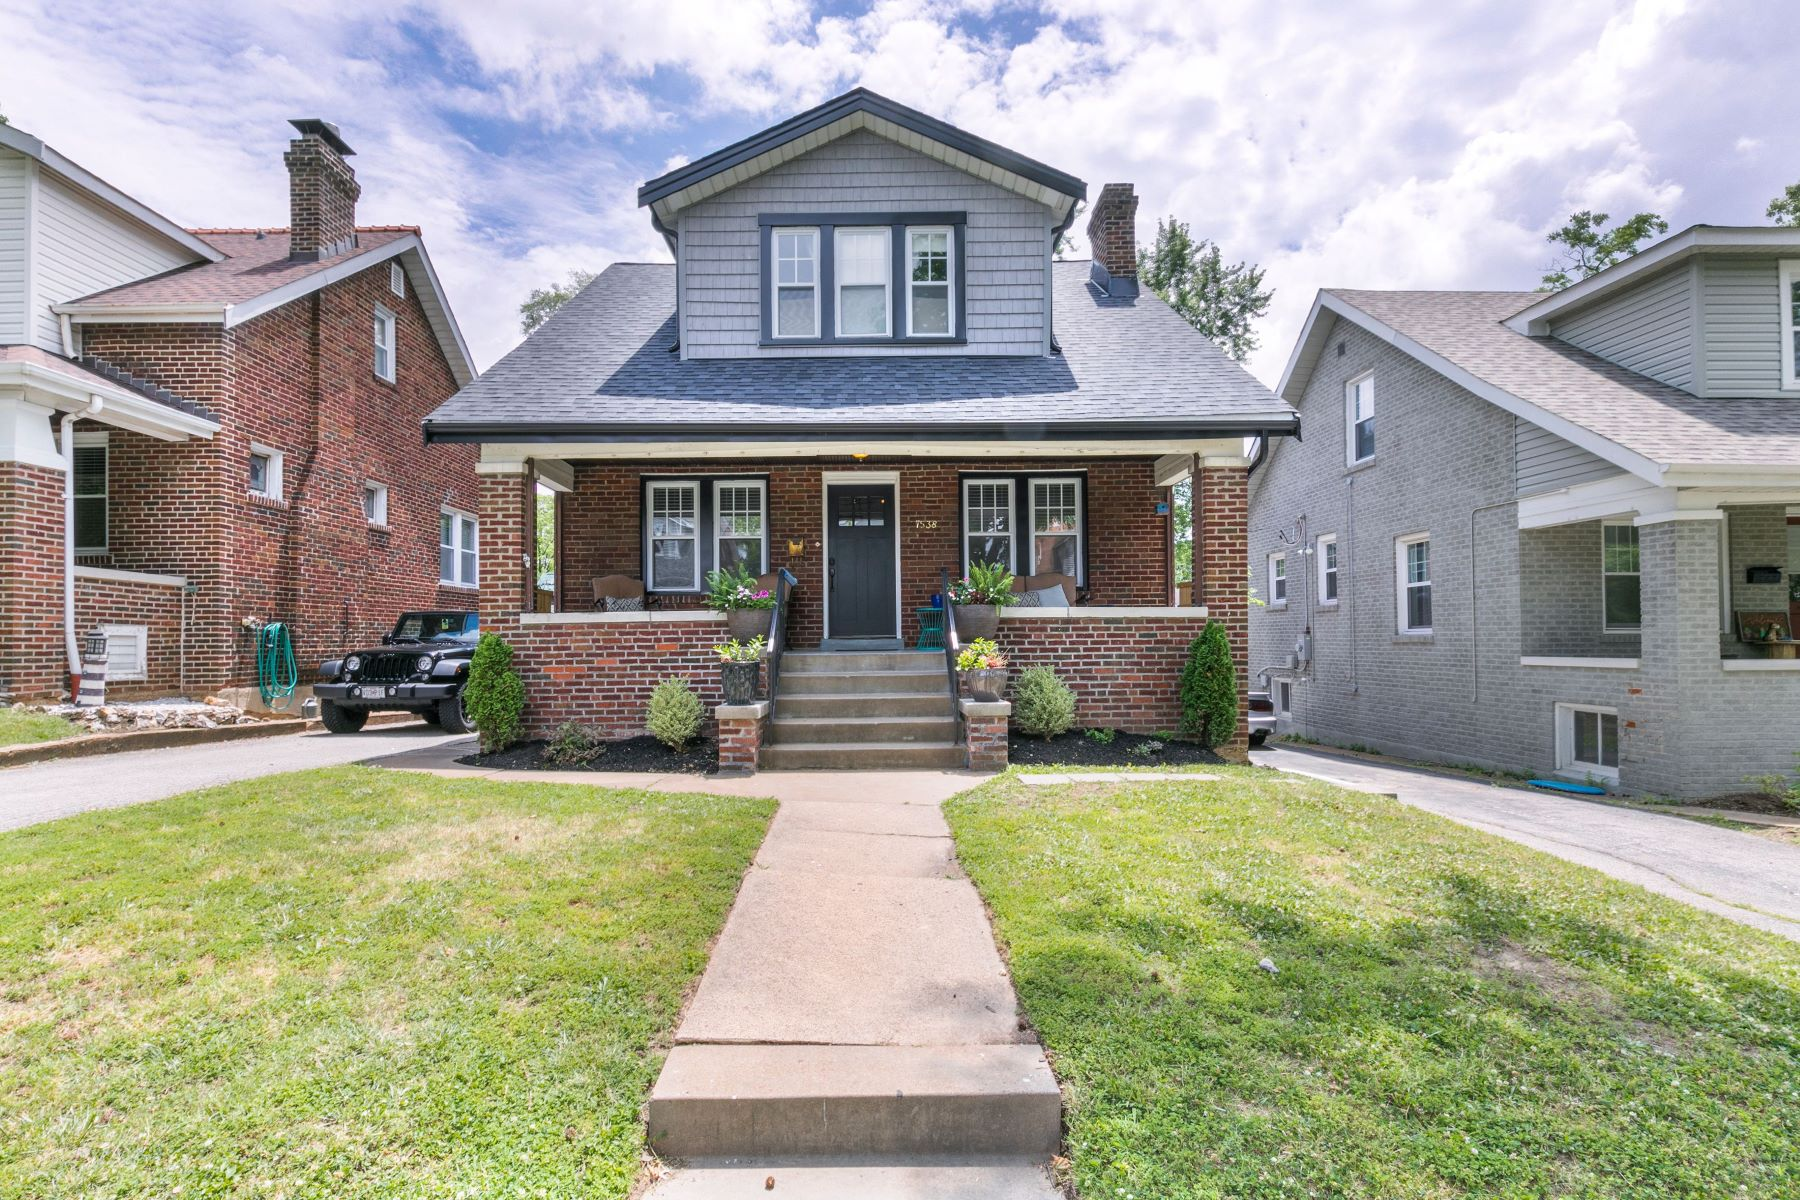 Property for Sale at Cosmopolitan Vibe With Old-School Charm 7538 Lovella Avenue Richmond Heights, Missouri 63117 United States